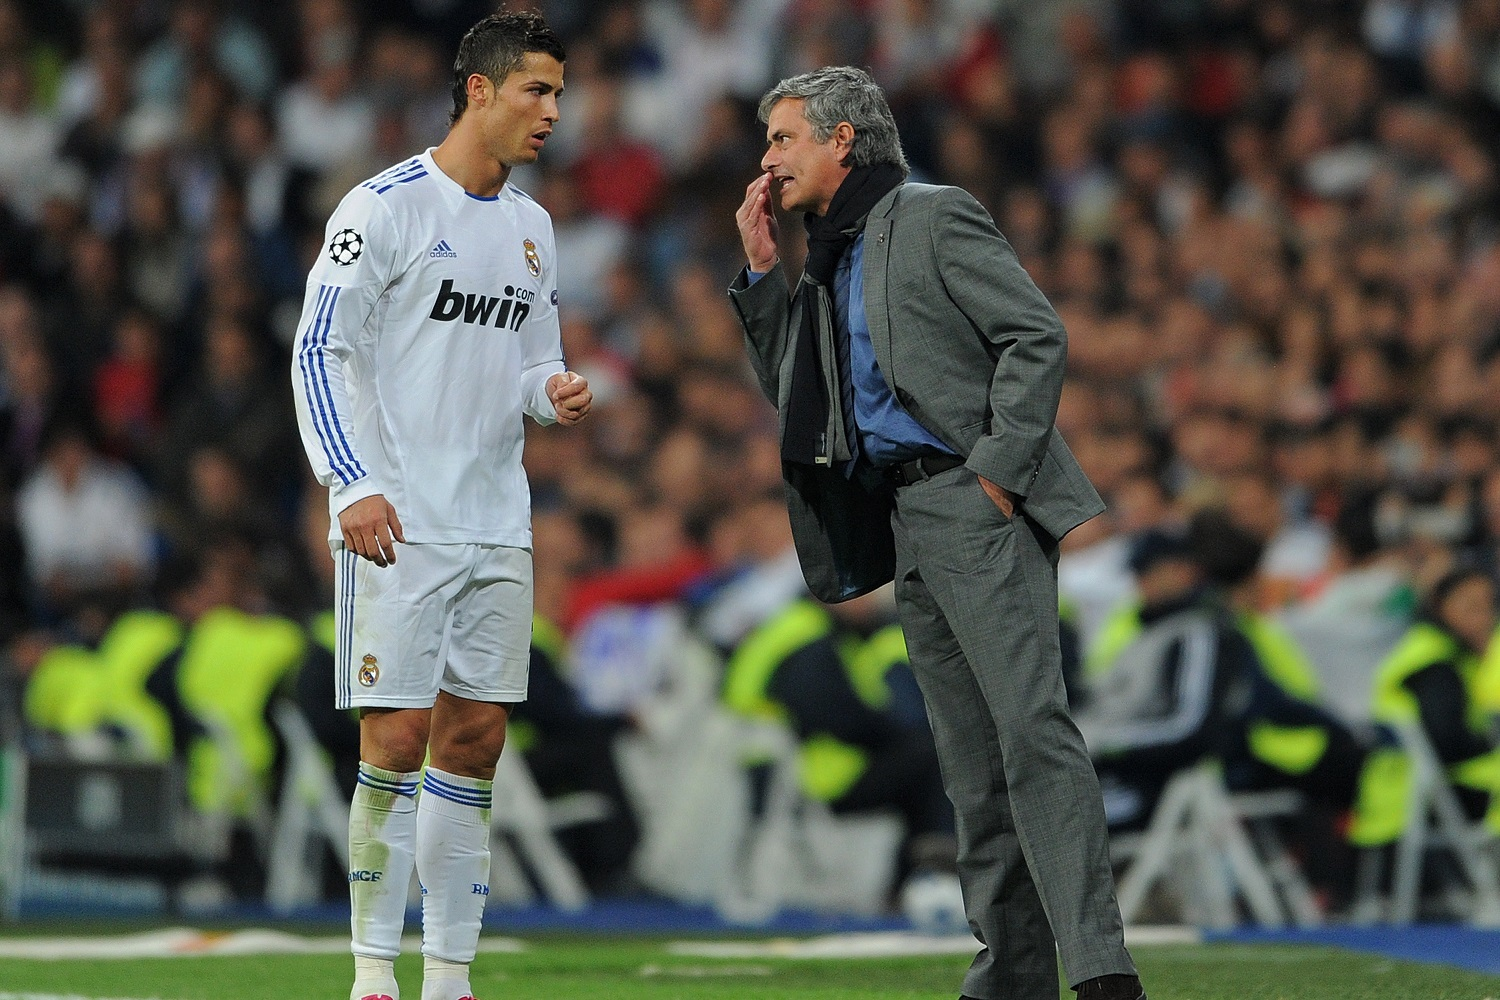 MADRID, SPAIN - OCTOBER 19: Head Coach Jose Mourinho (R) of Real Madrid instructs Cristiano Ronaldo during the UEFA Champions League group G match between Real Madrid and AC Milan at the Estadio Santiago Bernabeu on October 19, 2010 in Madrid, Spain. (Photo by Jasper Juinen/Getty Images)